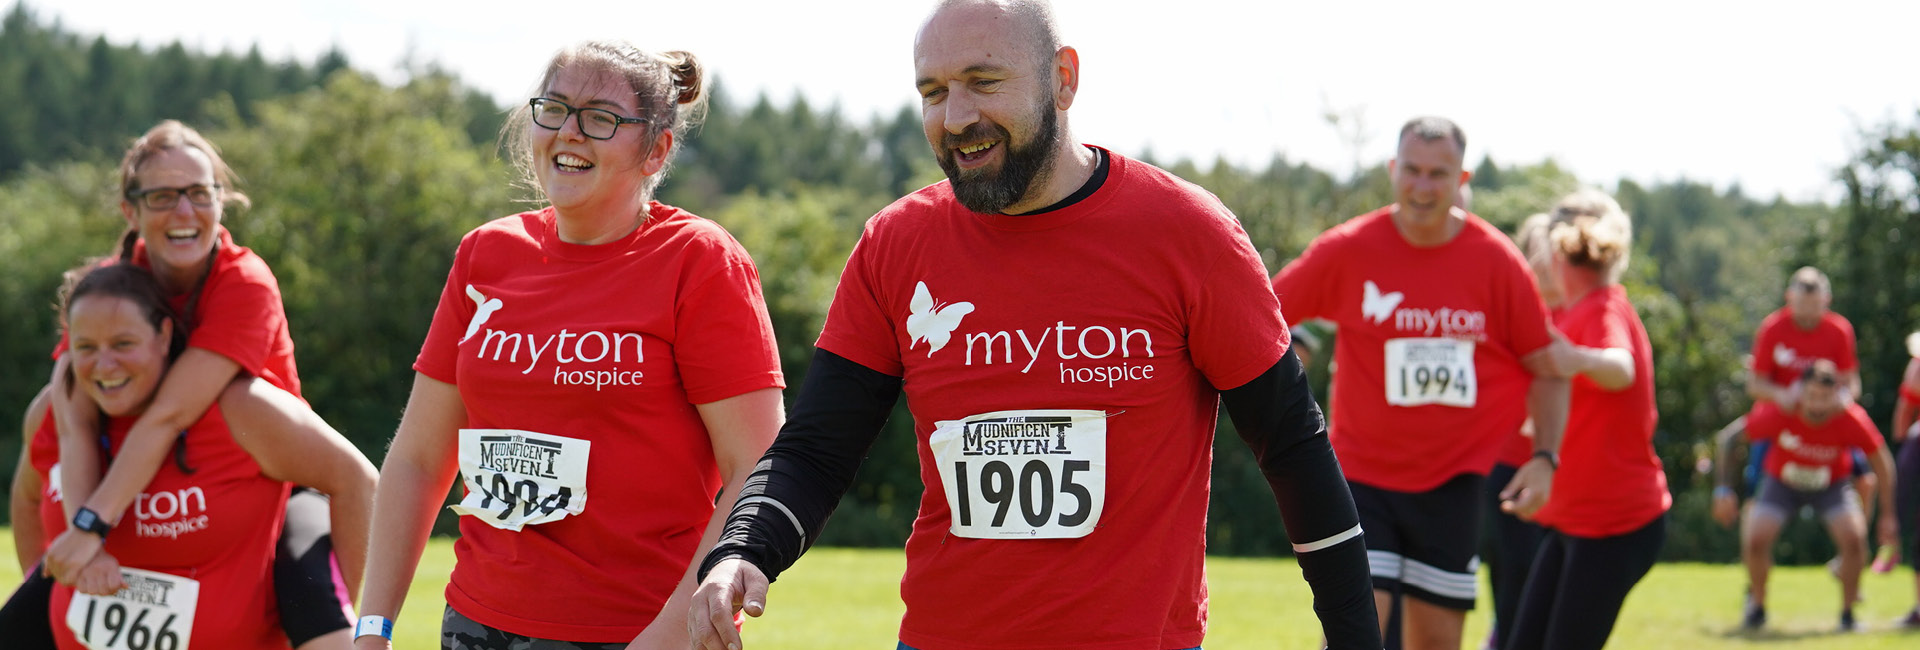 Mud 7 2020 - Challenge Event - The Myton Hospices - Warwickshire - Coventry - Leamington Spa